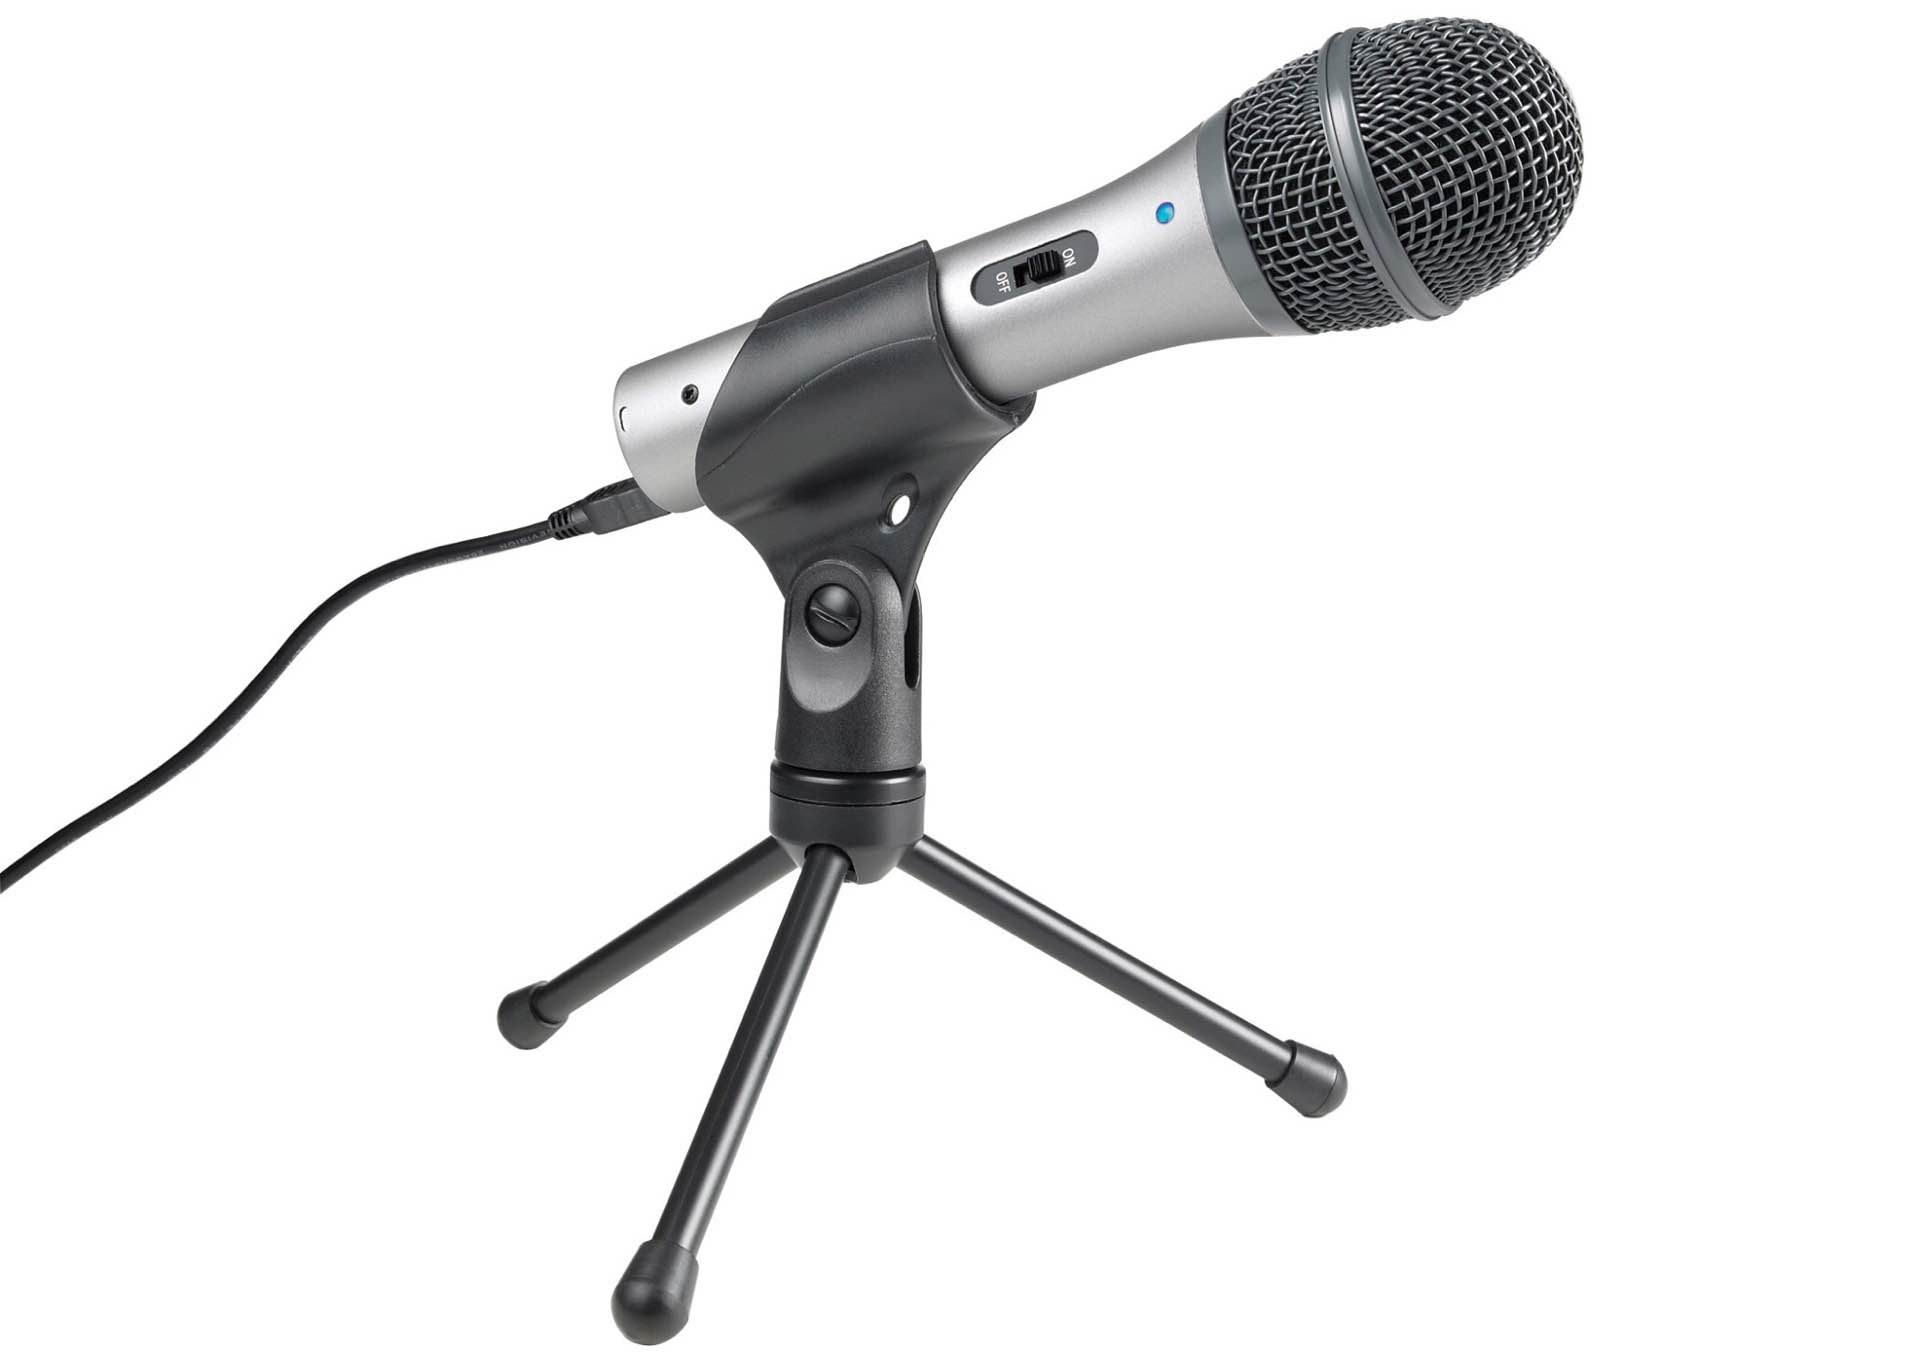 Audio-Technica ATR2100-USB microphone. ($79)